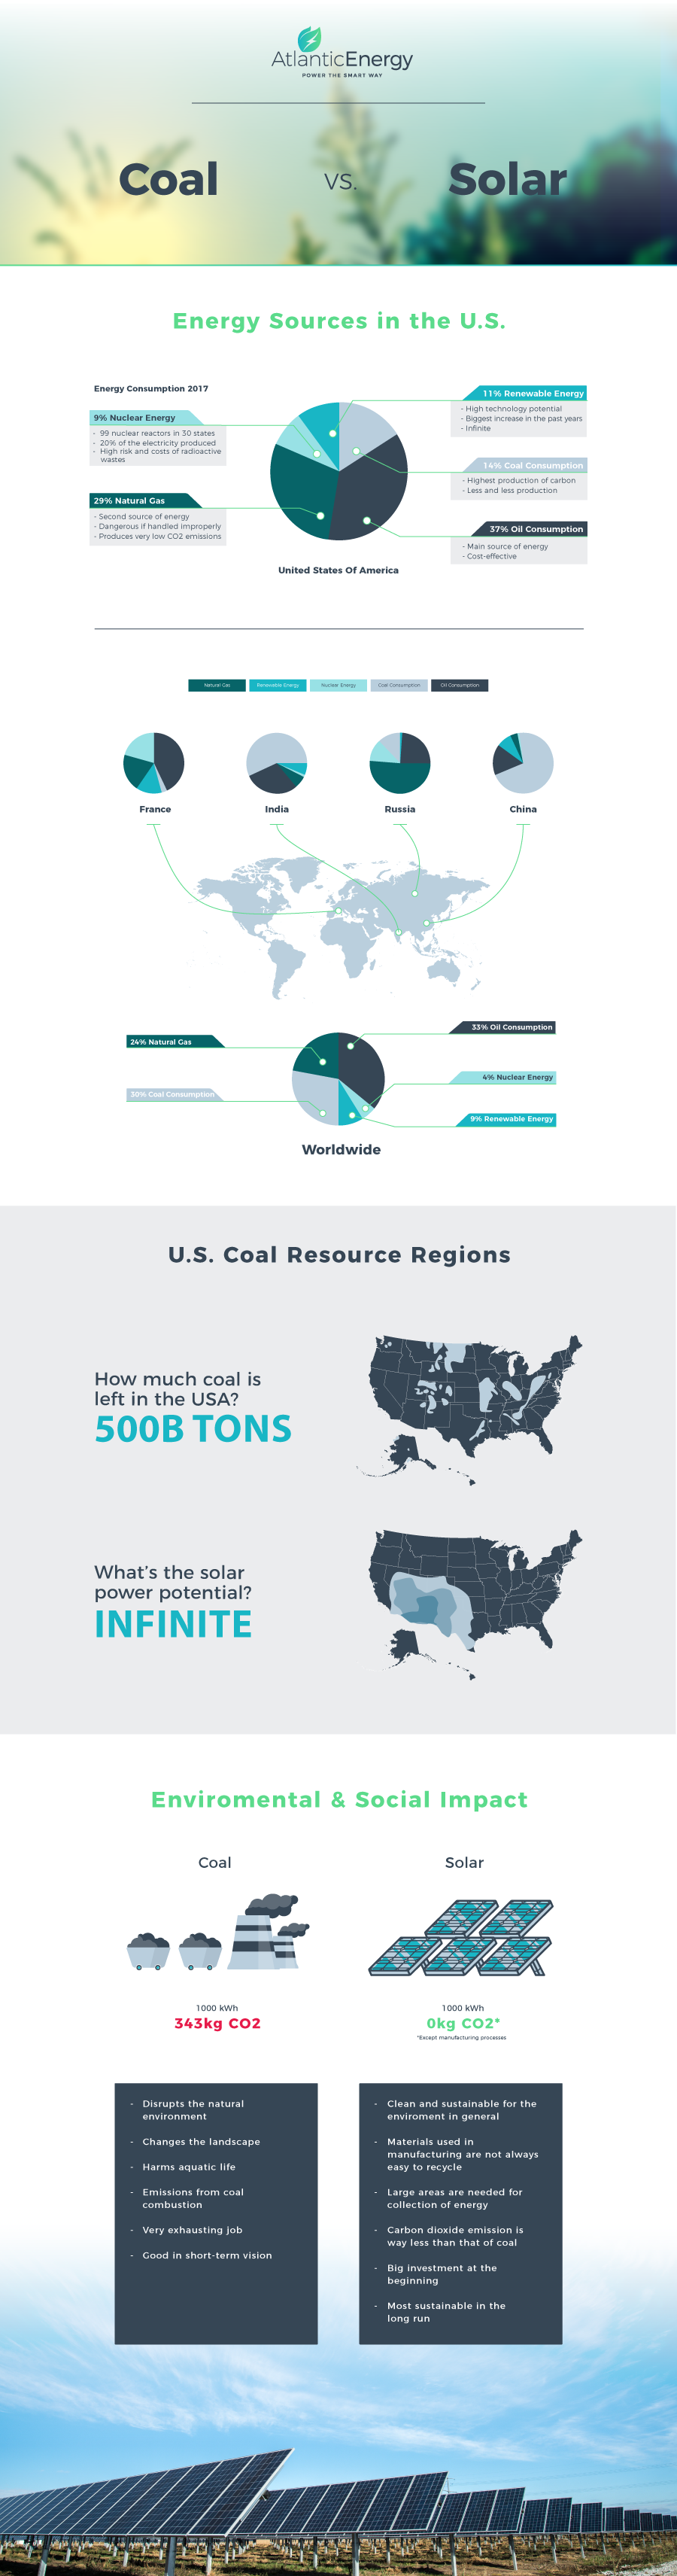 coal-vs-solar-infographic-plaza